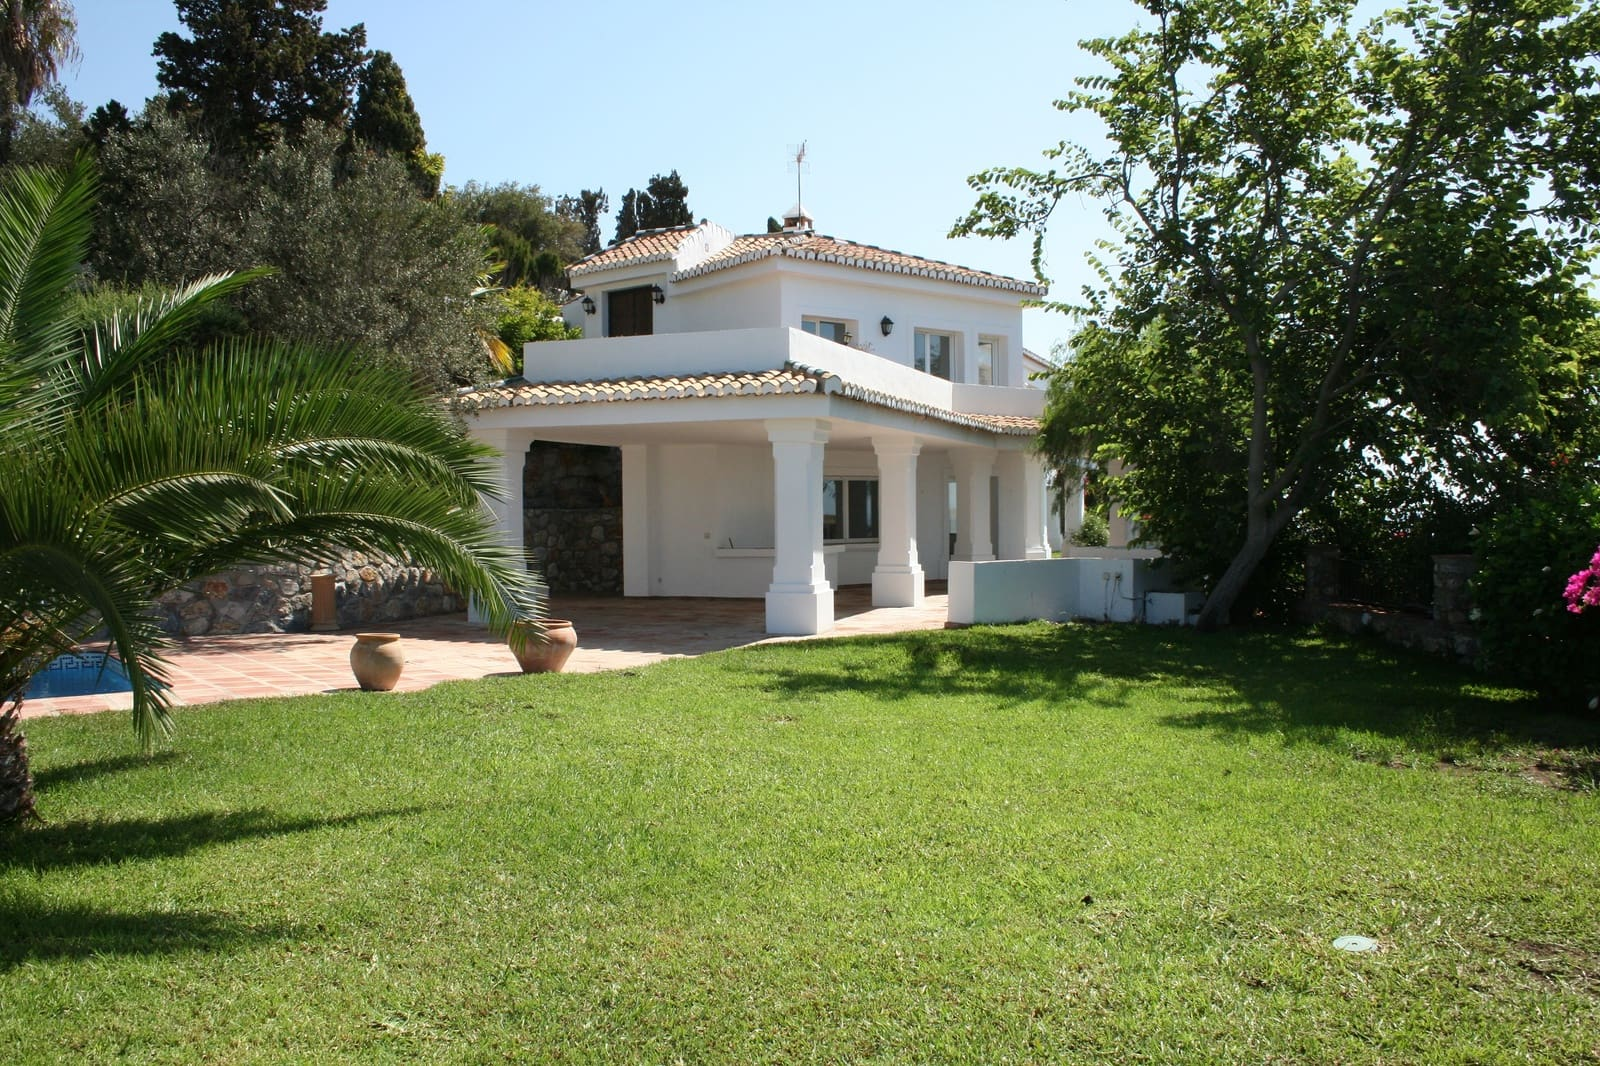 6 bedroom Villa for sale in Almunecar with pool - € 999,000 (Ref: 4620905)